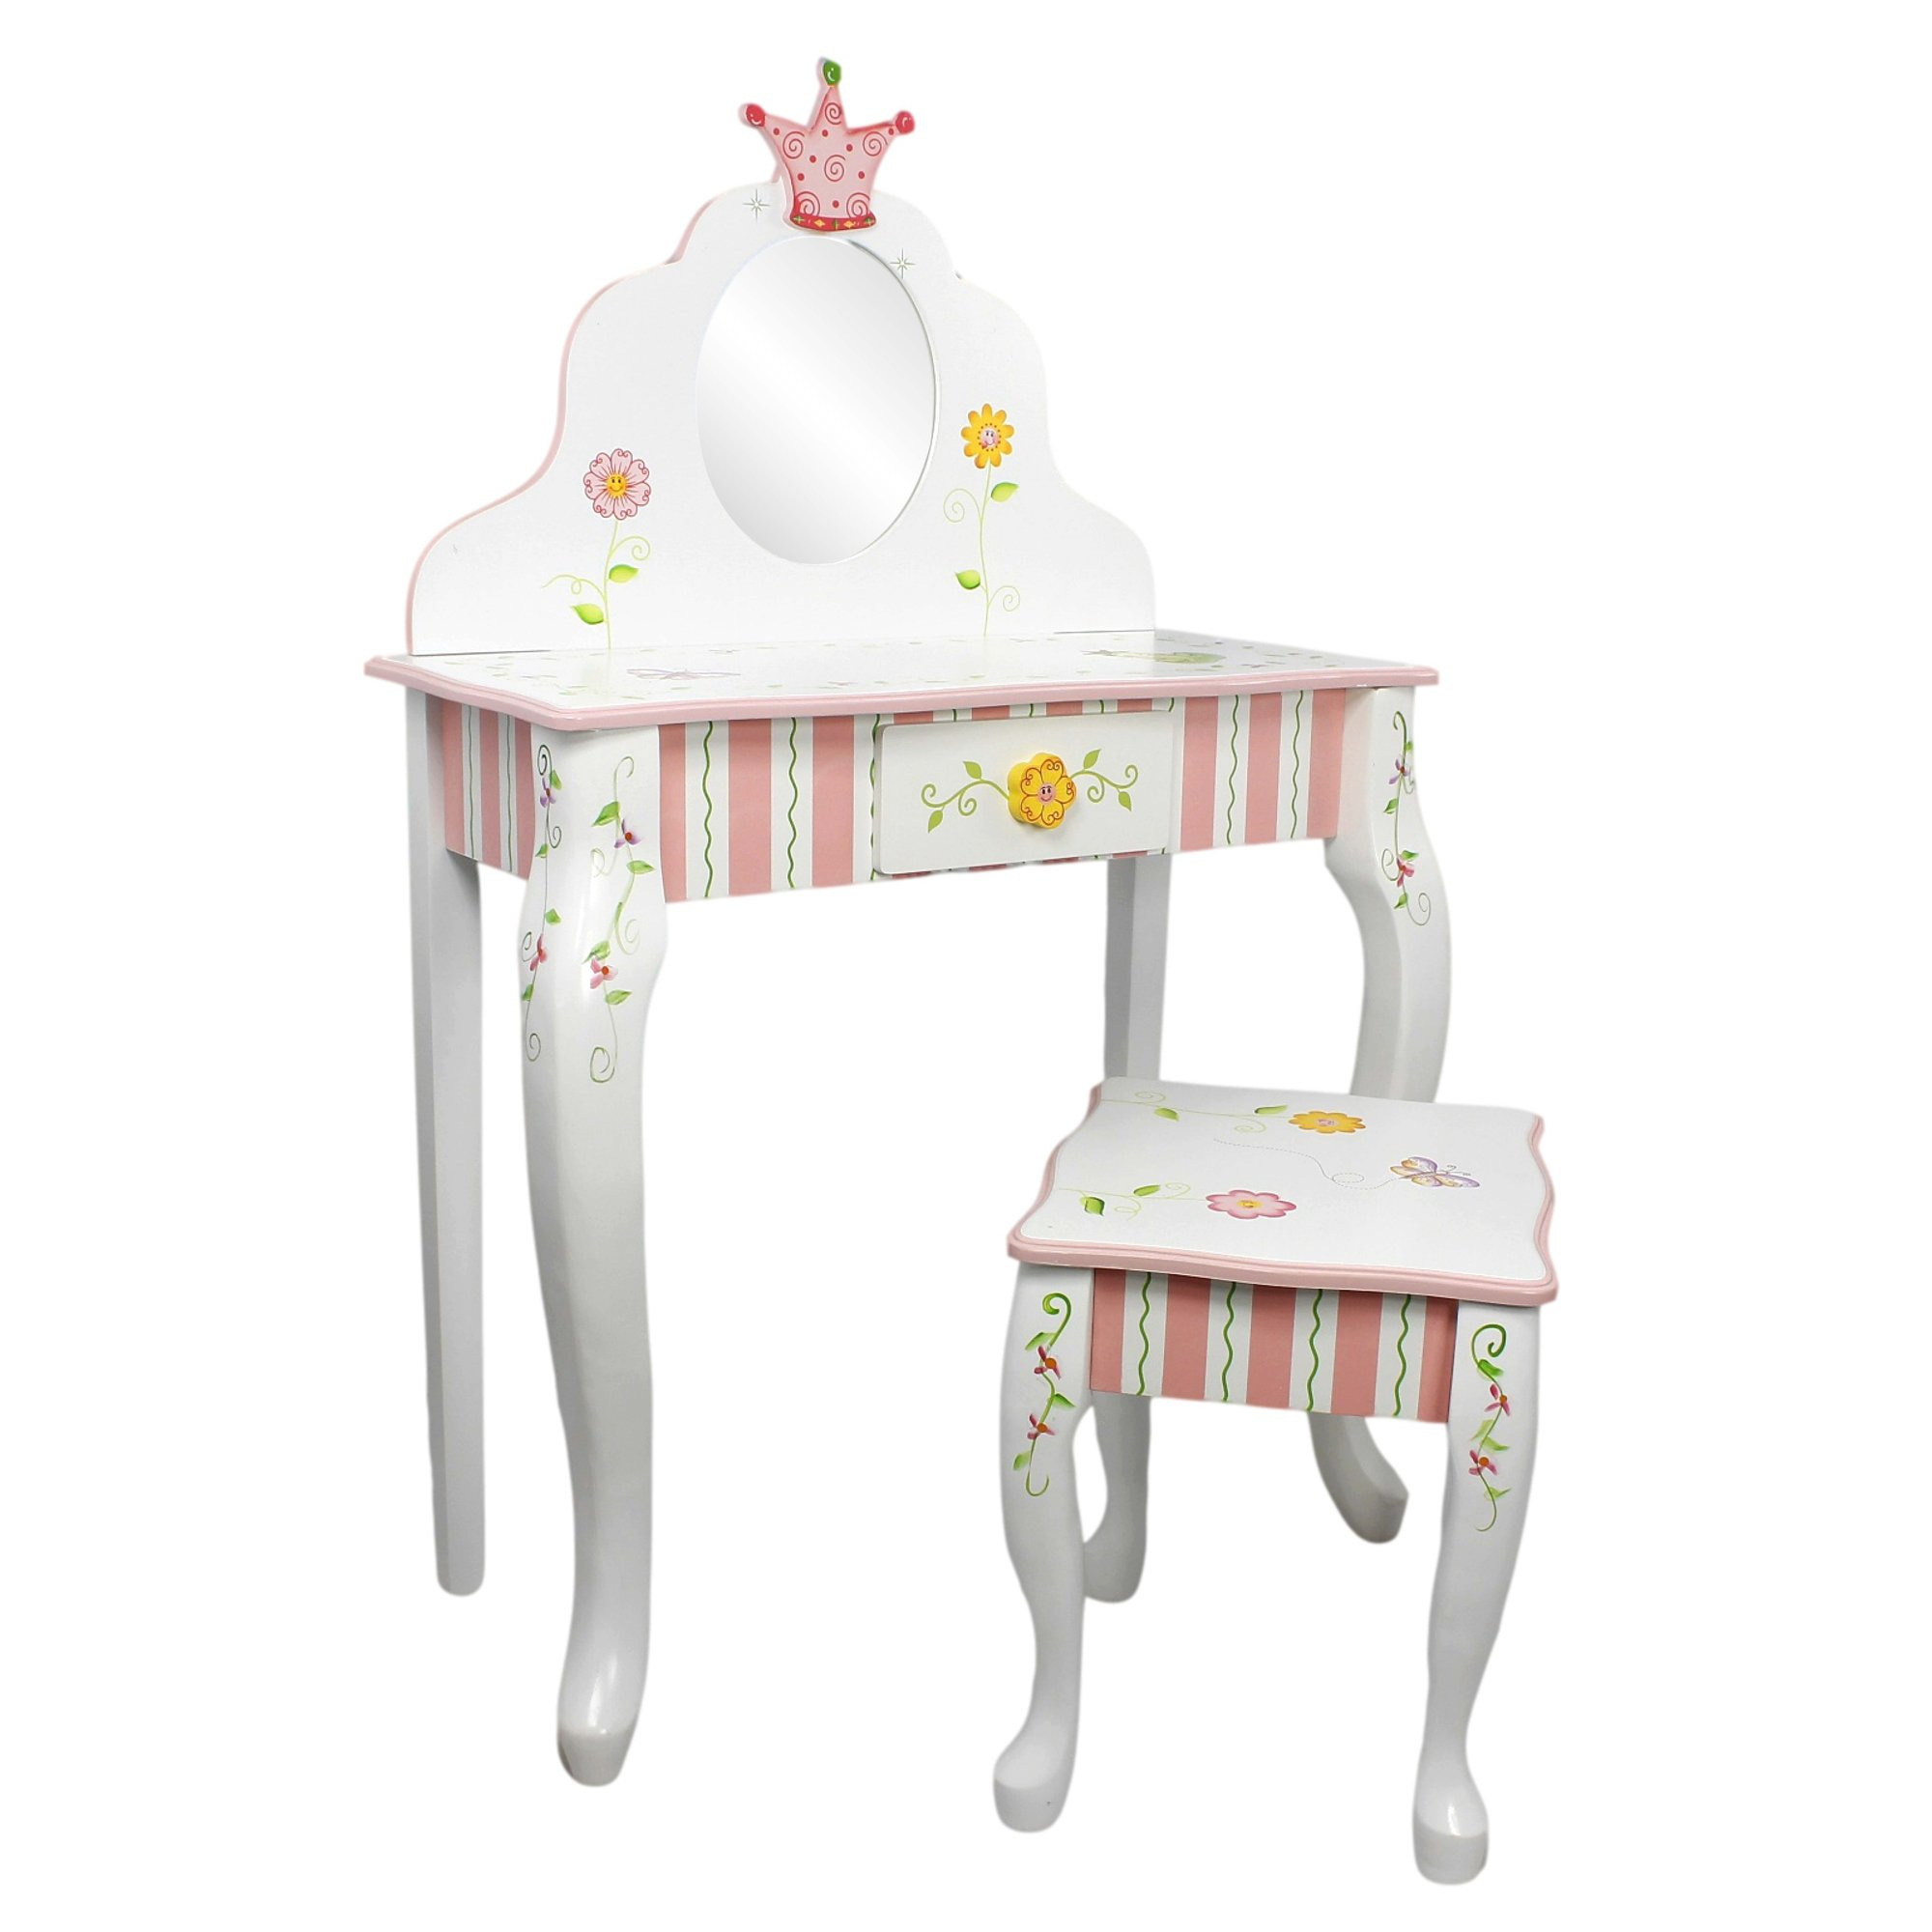 Teamson Design Fantasy Fields Princess & Frog Vanity Table and Stool Set